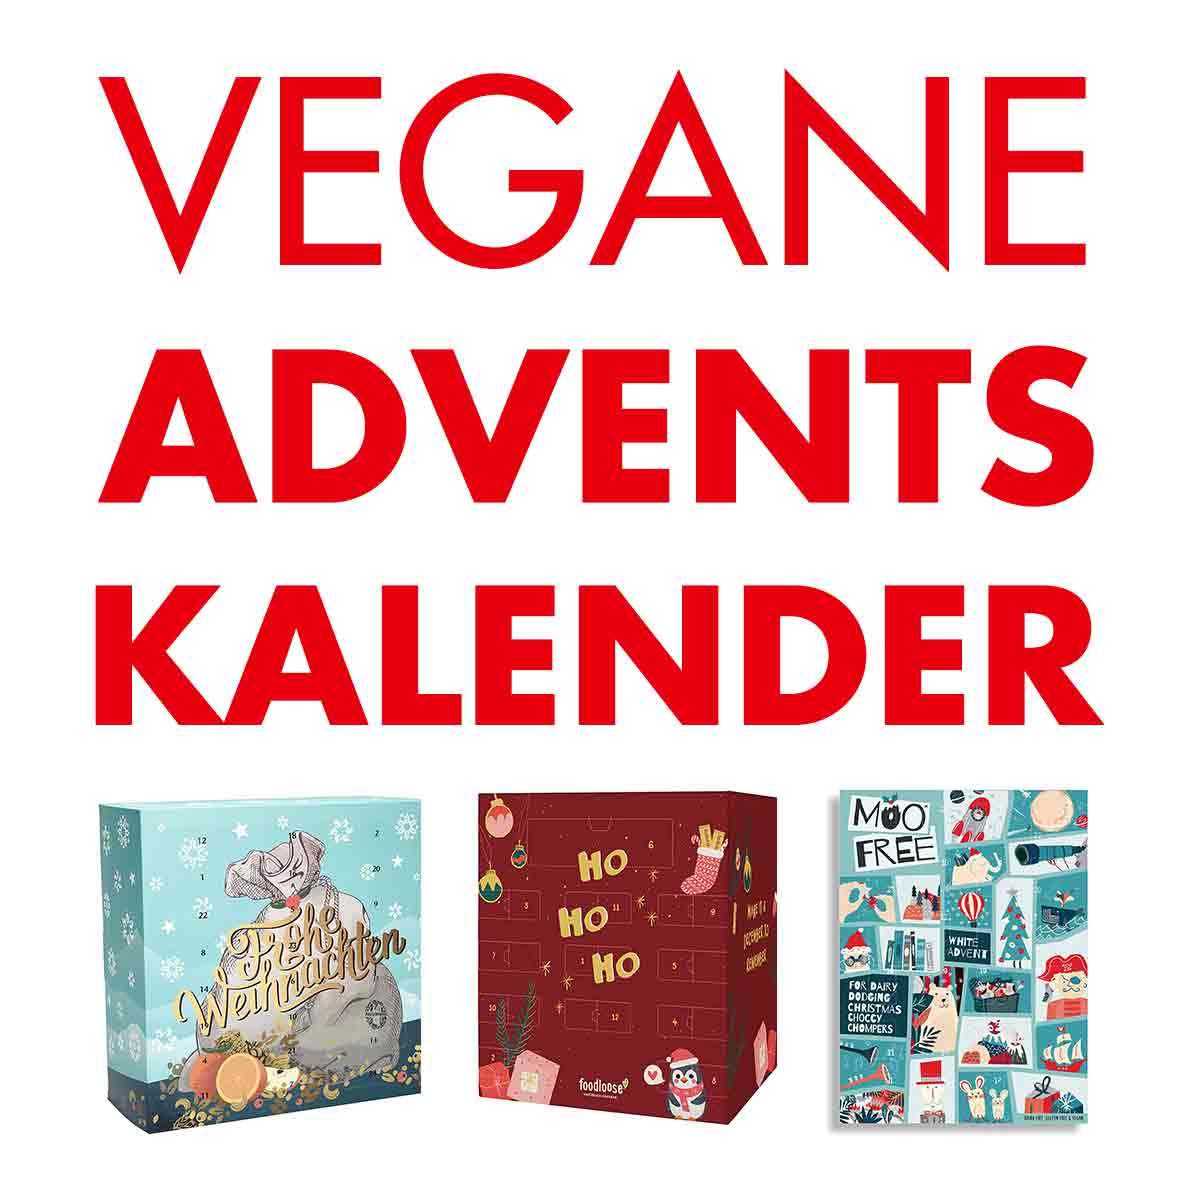 Vegane Adventskalender 2018